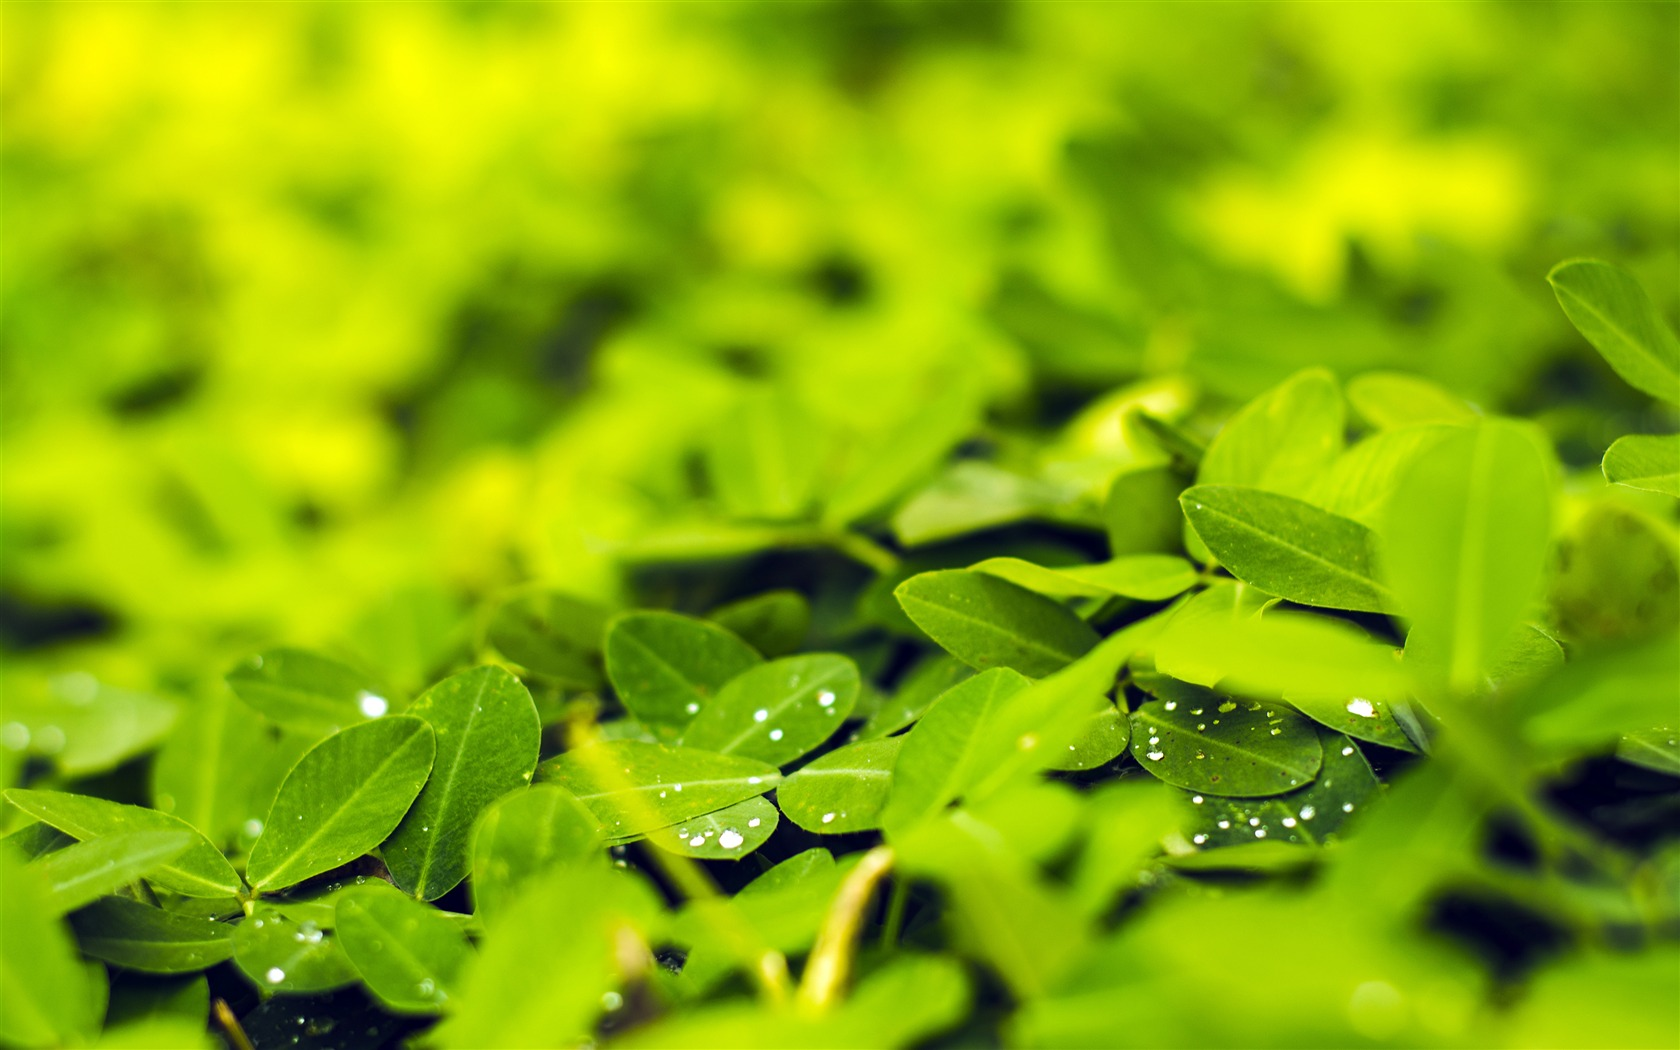 Spring fresh green leaves water droplets - 1680x1050 wallpaper download